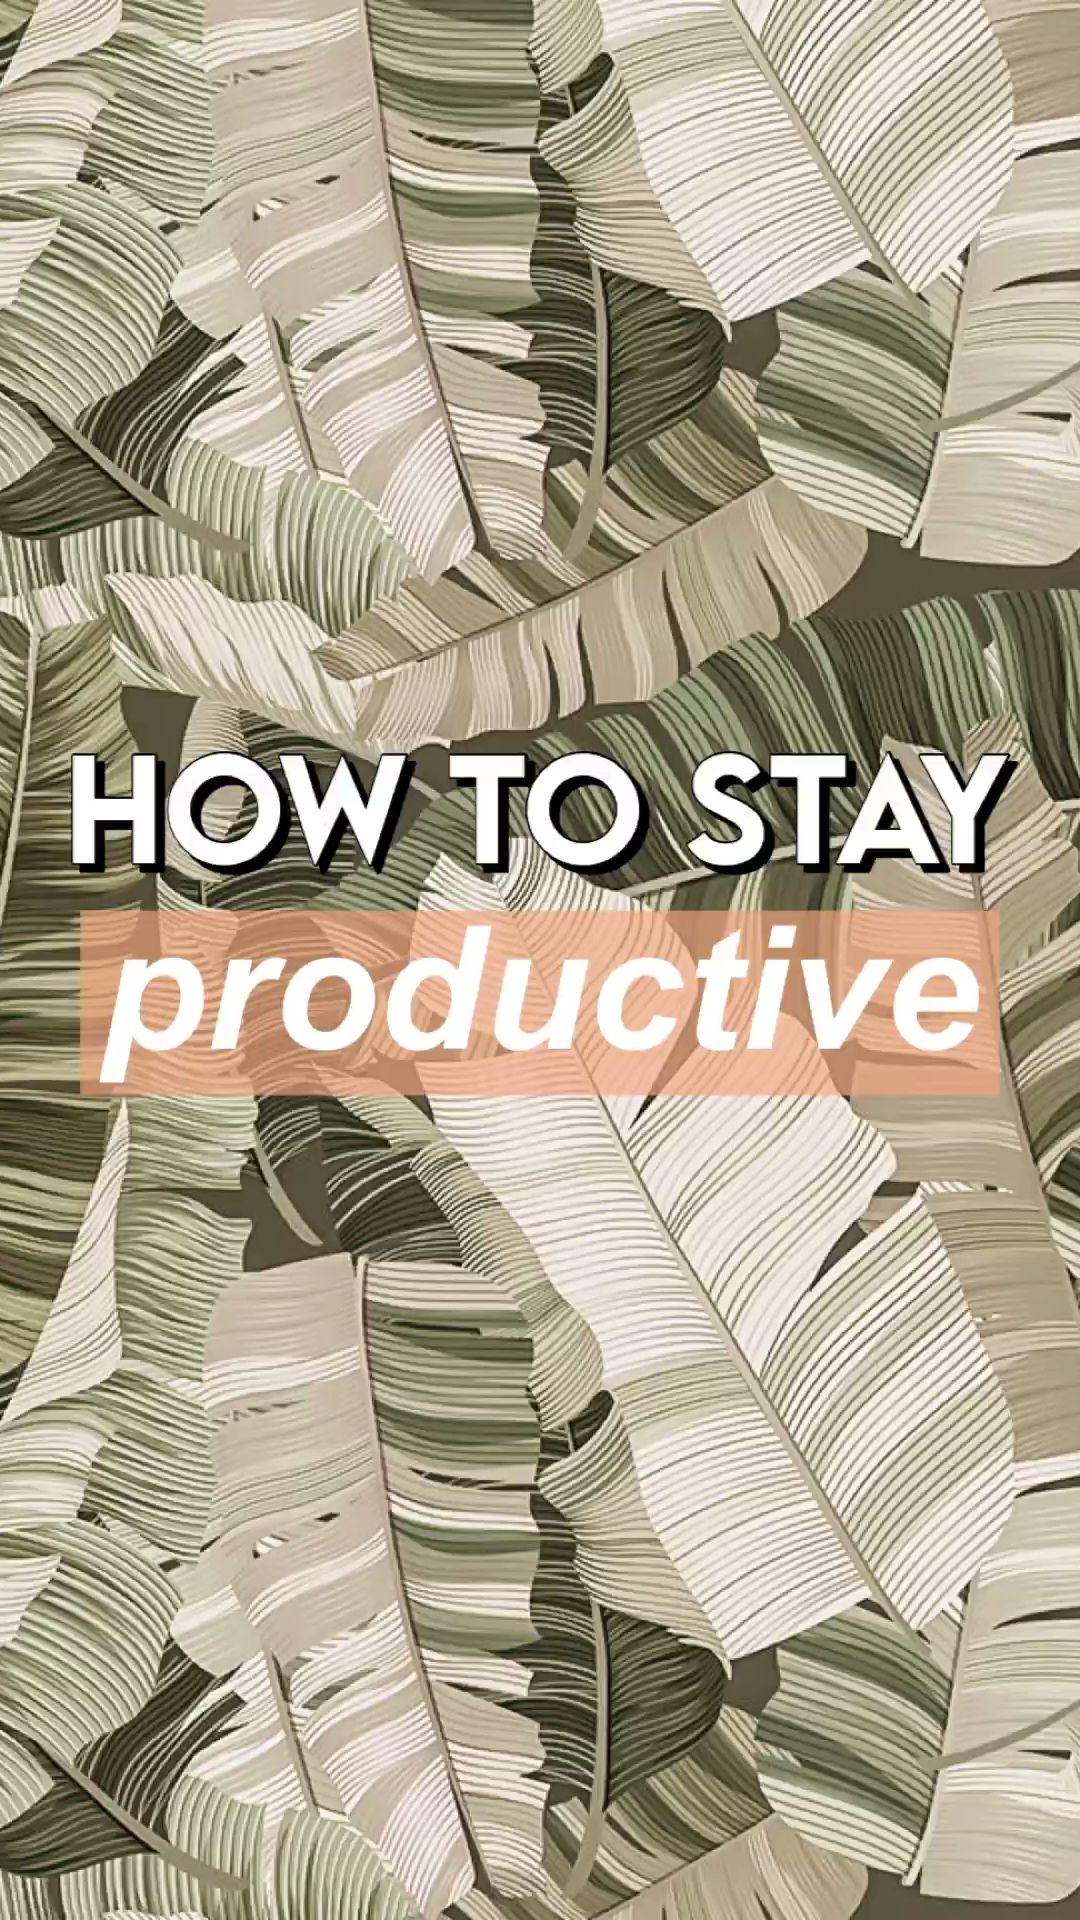 how to stay productive ☆